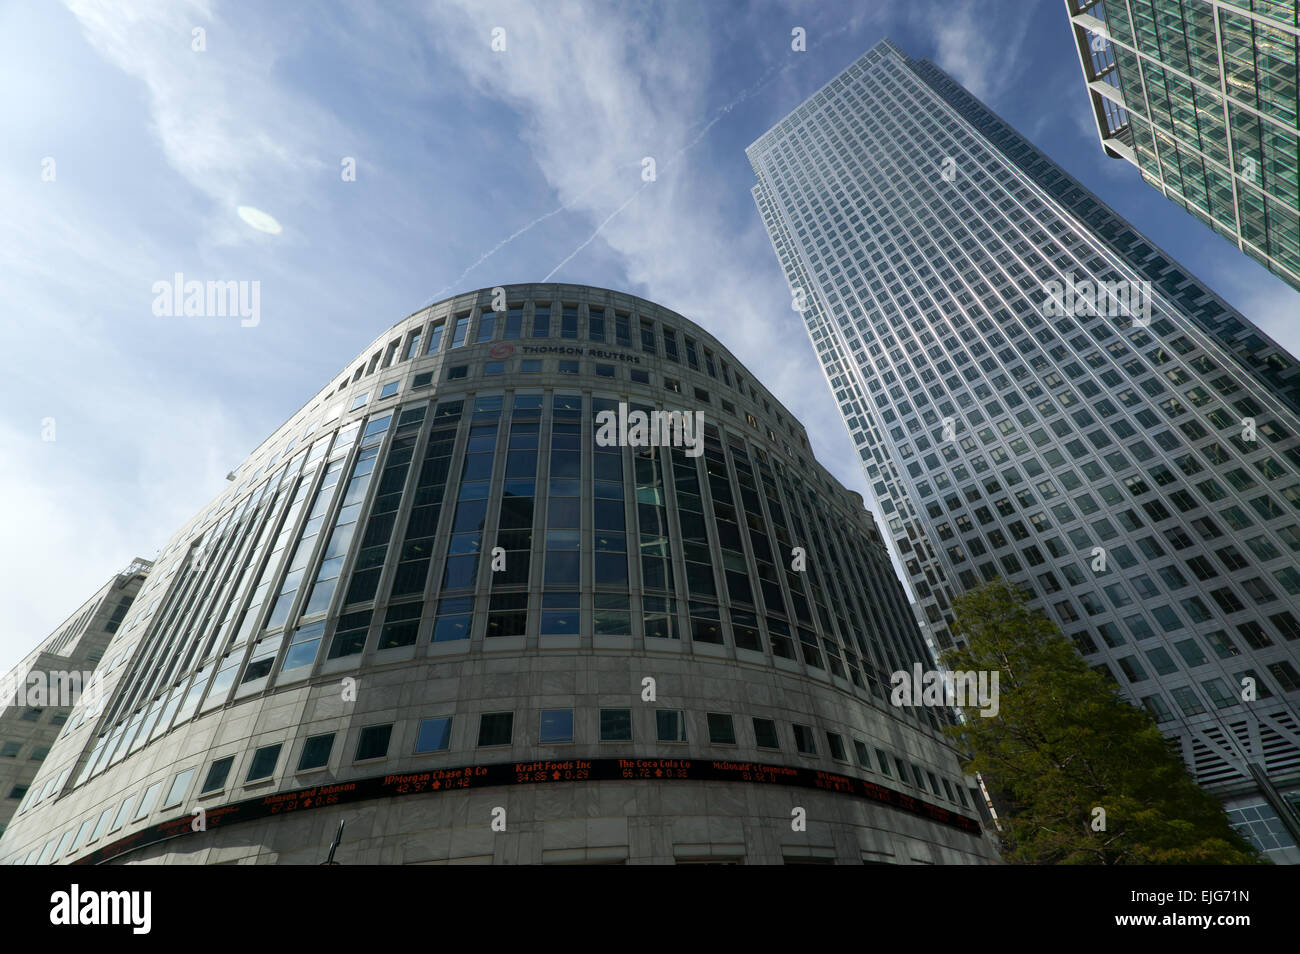 Wide-Angle view of One Canada Square  and the Thompson Reuters Building. - Stock Image